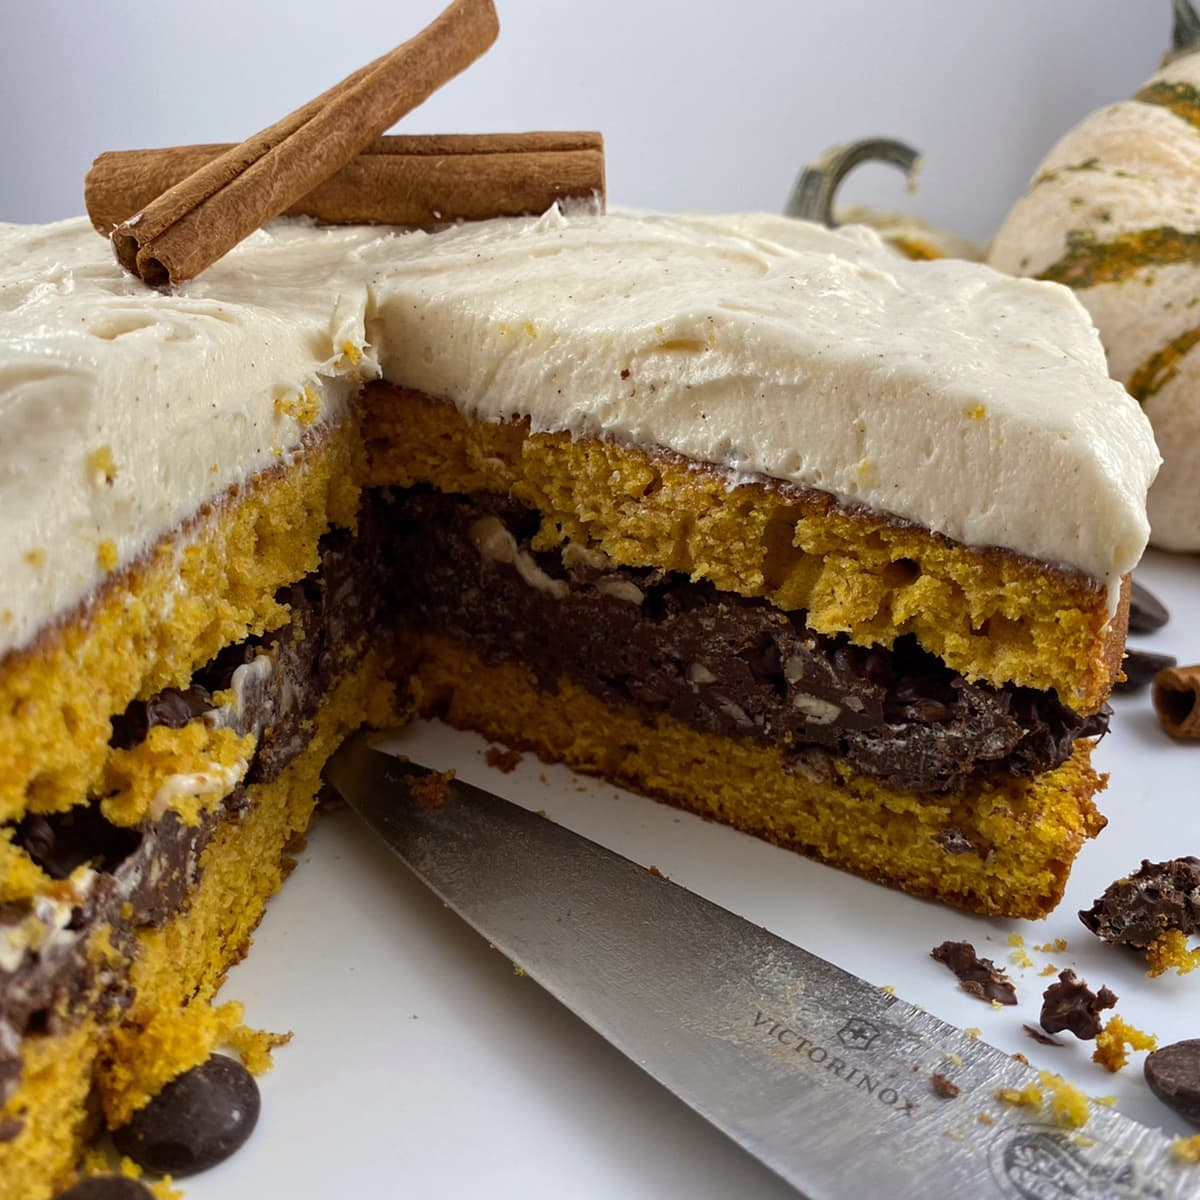 Pumpkin Cake with Pumpkin SpiceFrostingwith hazelnut crunch fillings  tgat is garnished with cinnamon sticks and surrounded by pumpkins,  chocolate chips, and cinnamon sticks